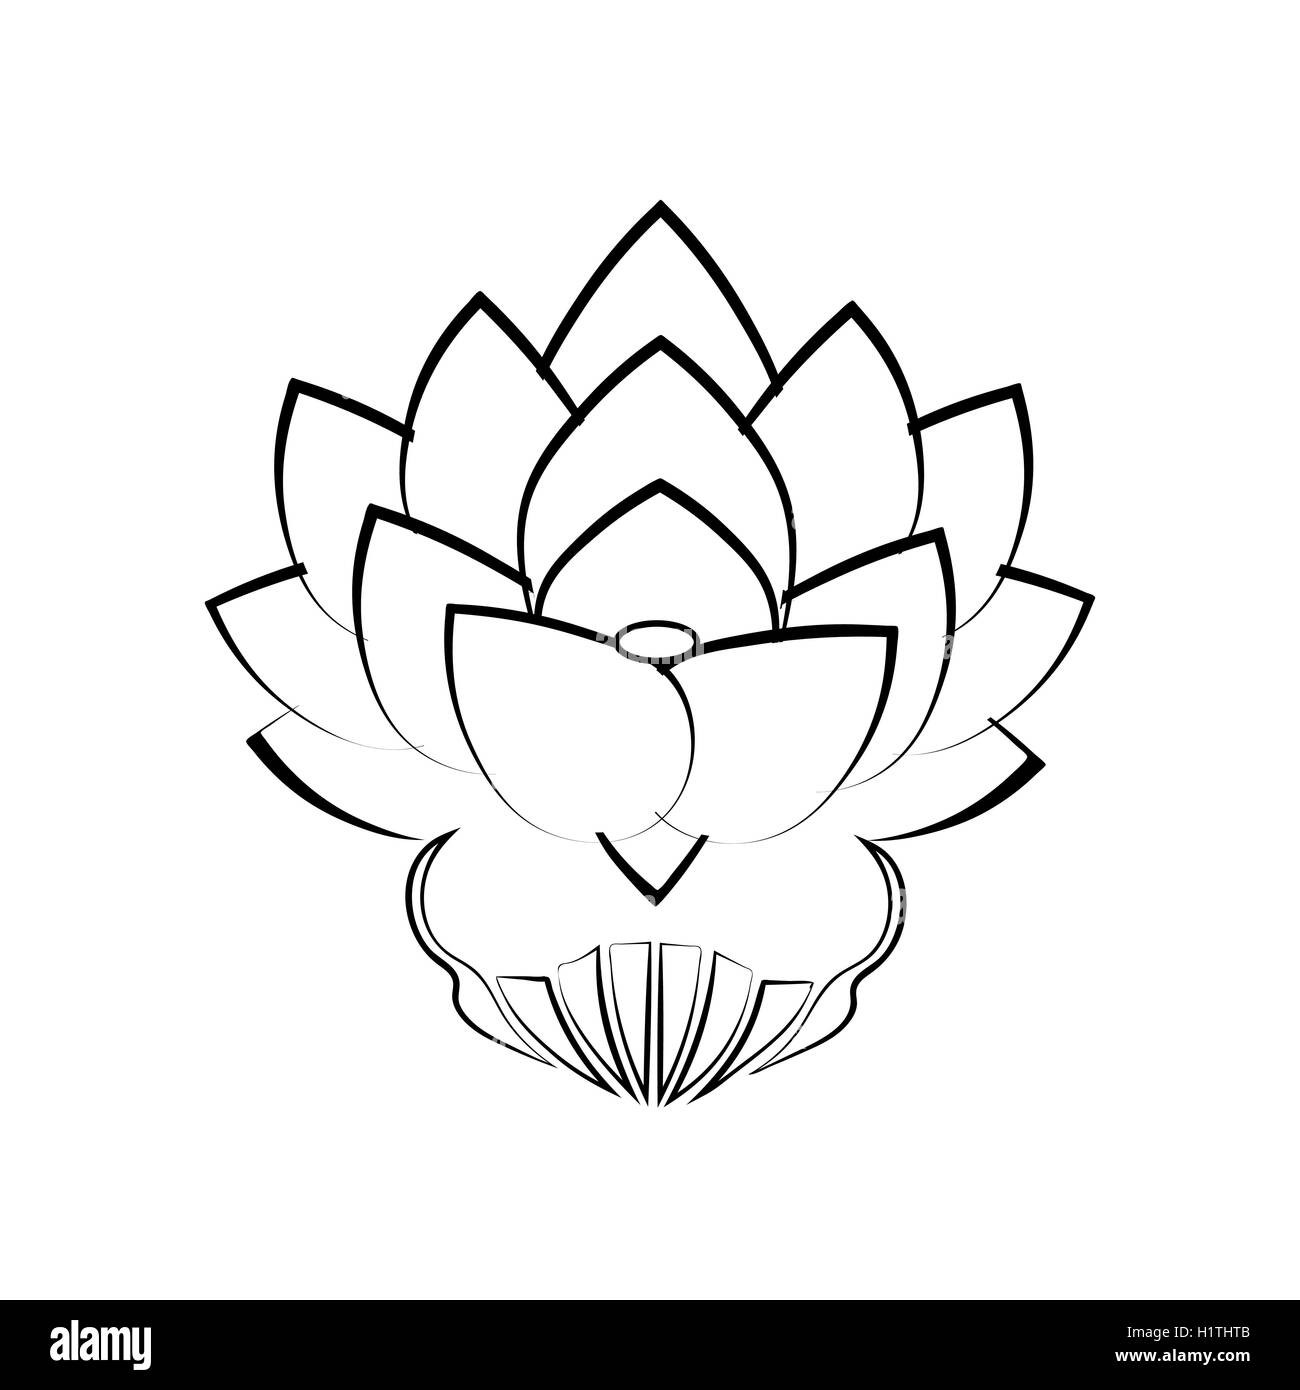 A lotus flower stock vector images alamy black stylized image of a lotus flower on a white background tattoo the symbol izmirmasajfo